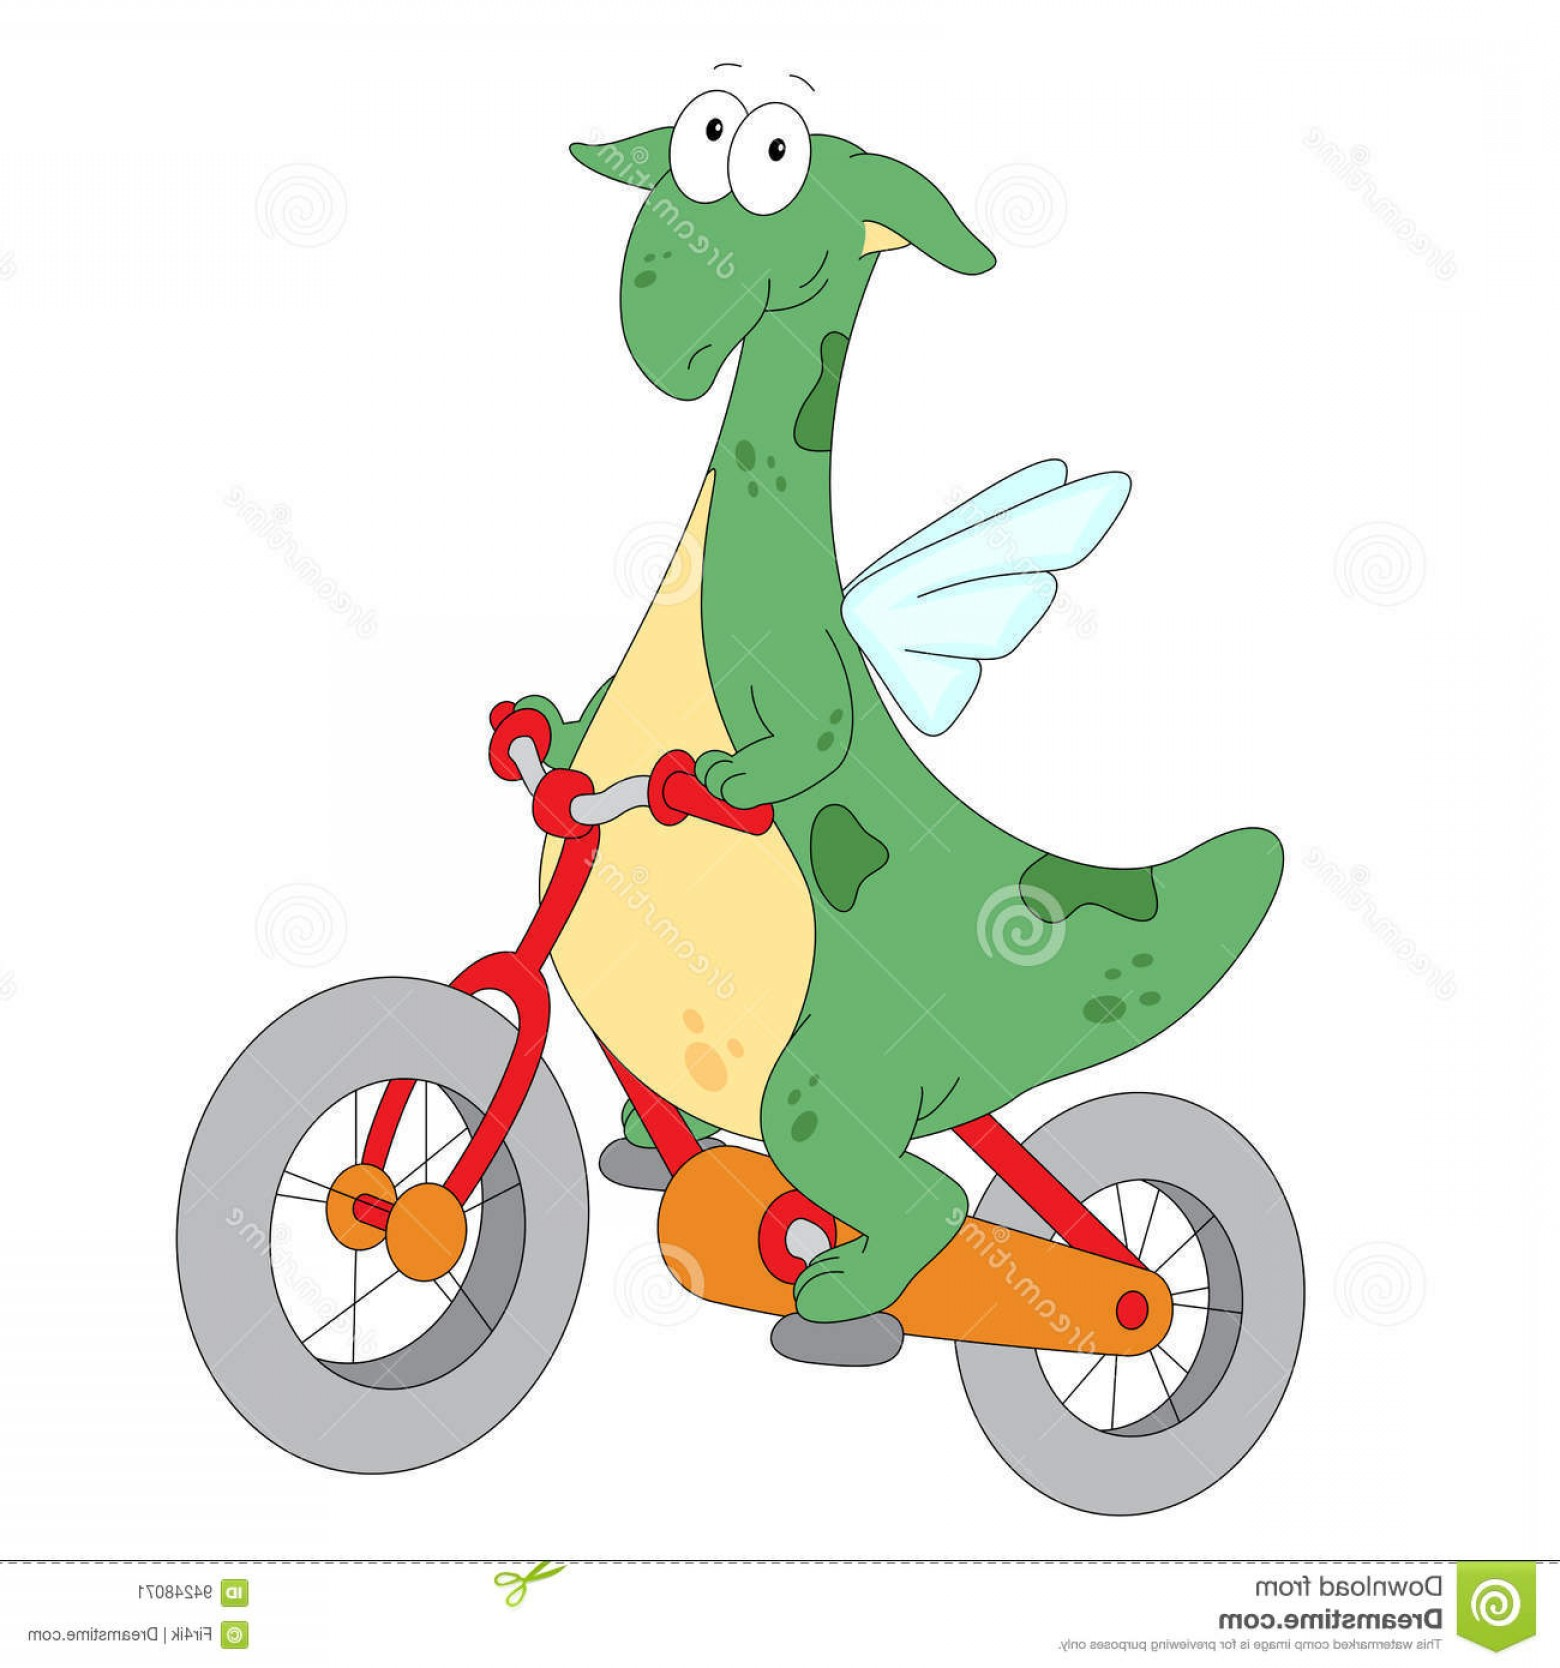 Riding A Dragon Art Vector Clip Art: Stock Illustration Happy Green Dragon Riding Bicycle Vector Flat Design Illustration Image